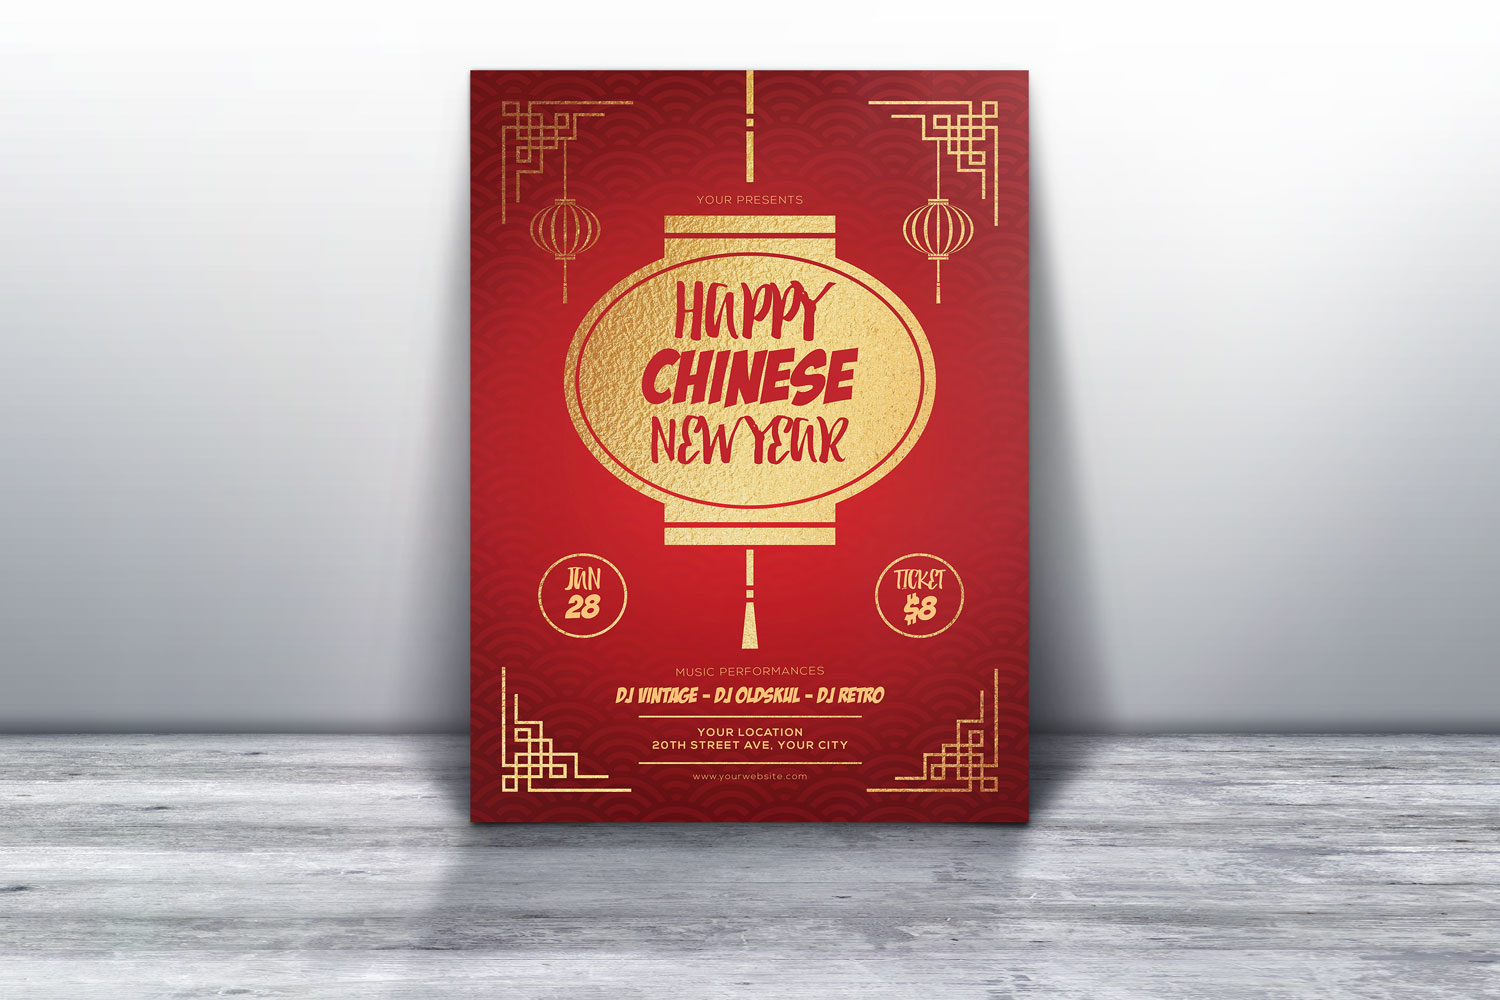 Chinese New Year Flyers example image 3